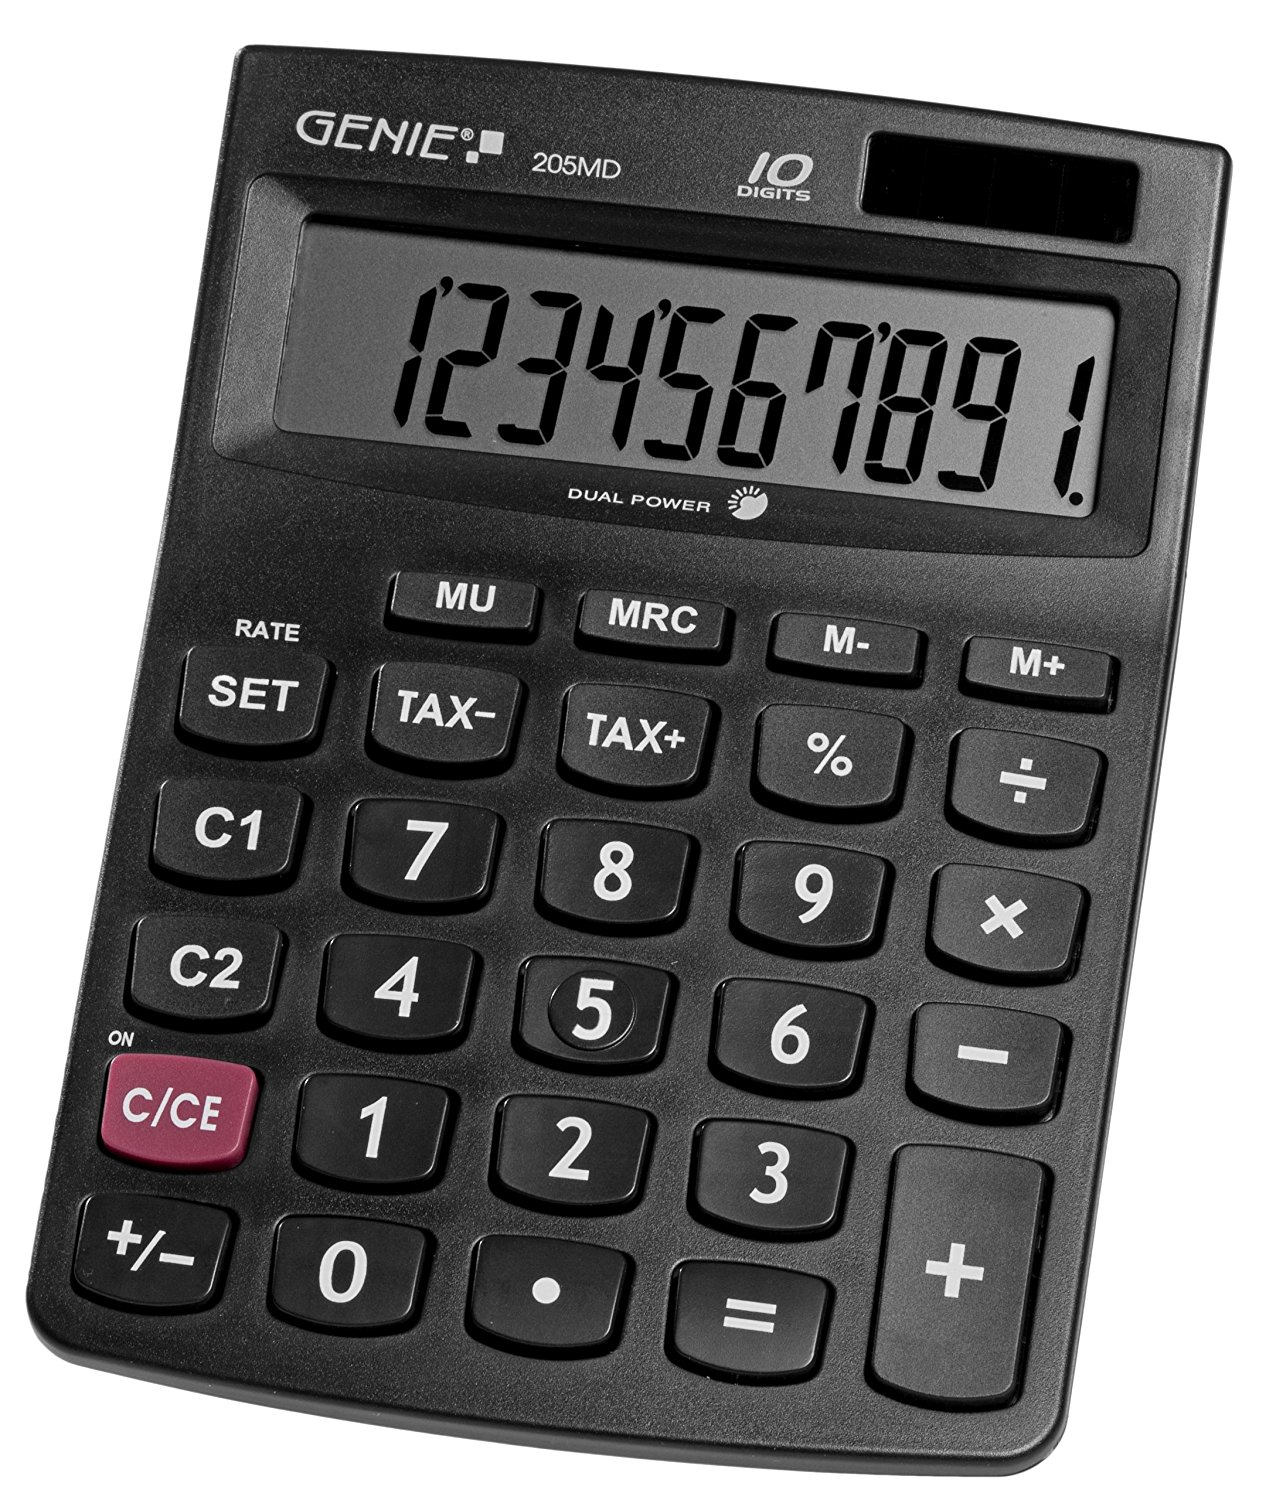 GENIE CCTV 12030G VALUE 205MD 10-DIGIT DESKTOP CALCULATOR 12030